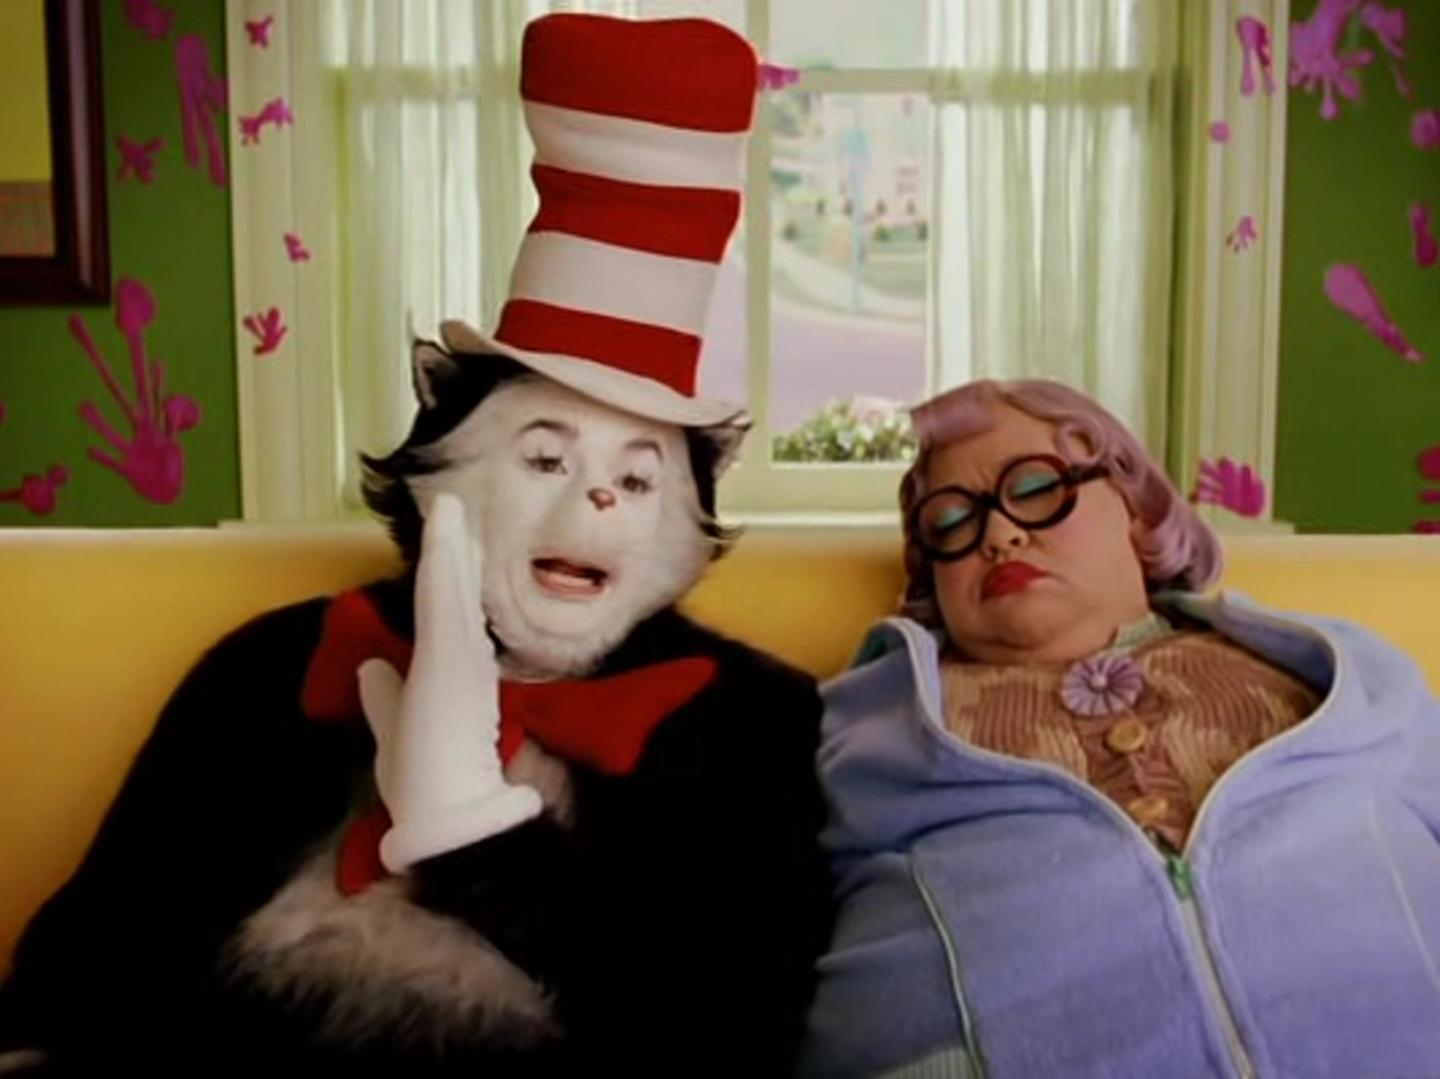 a4d5cbe2 Mike Myers branded 'diva' by Cat in the Hat co-star: 'It was just a ...